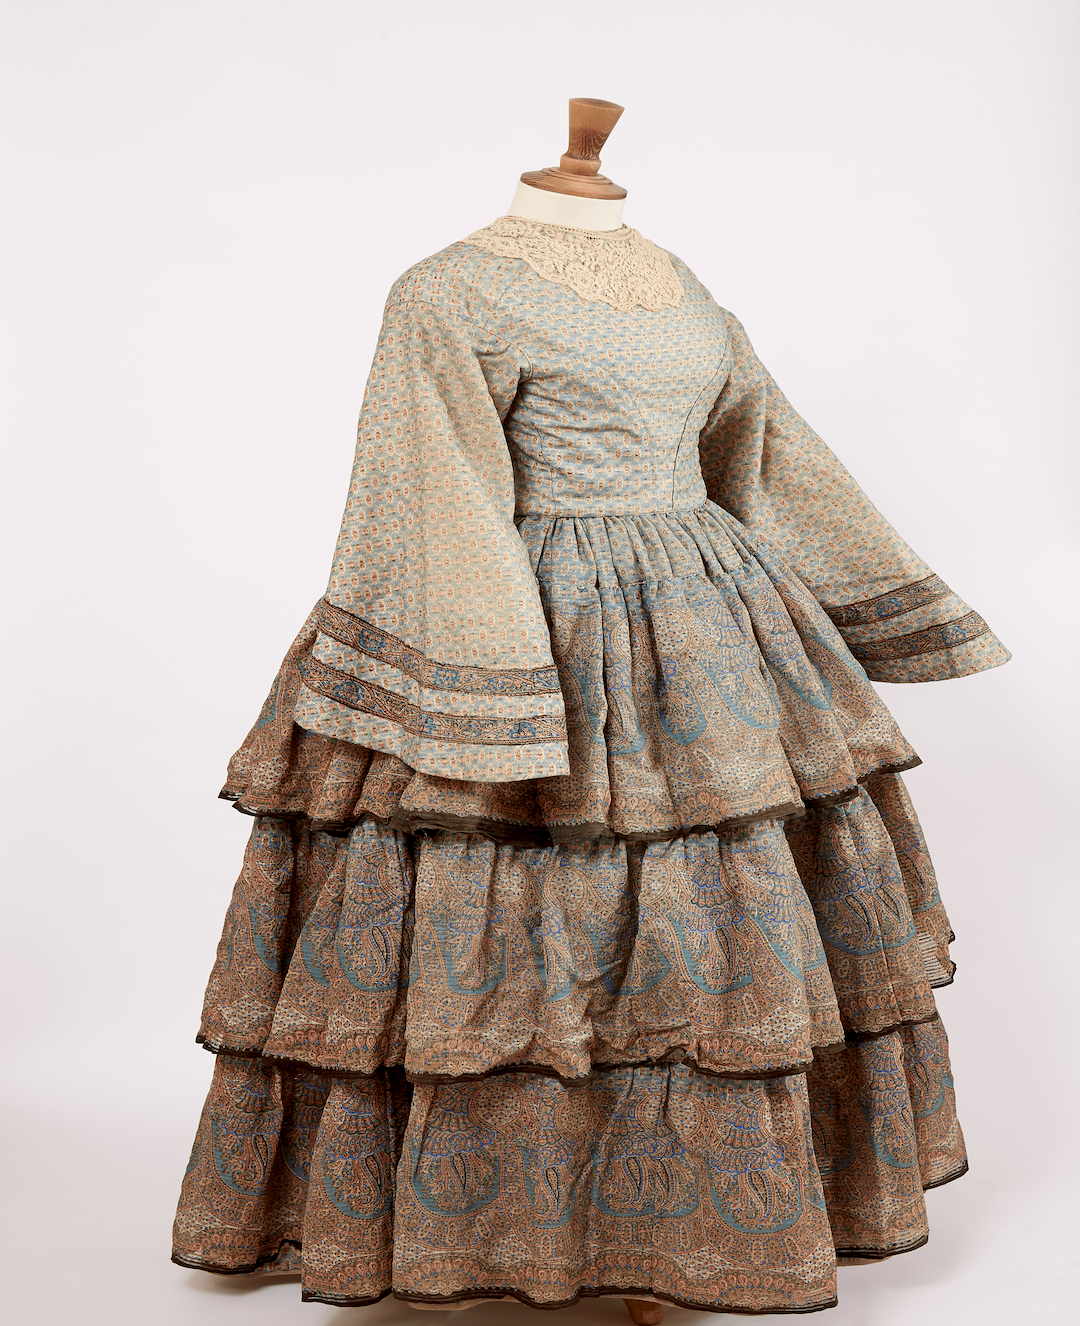 Costume from International Country House exhibition